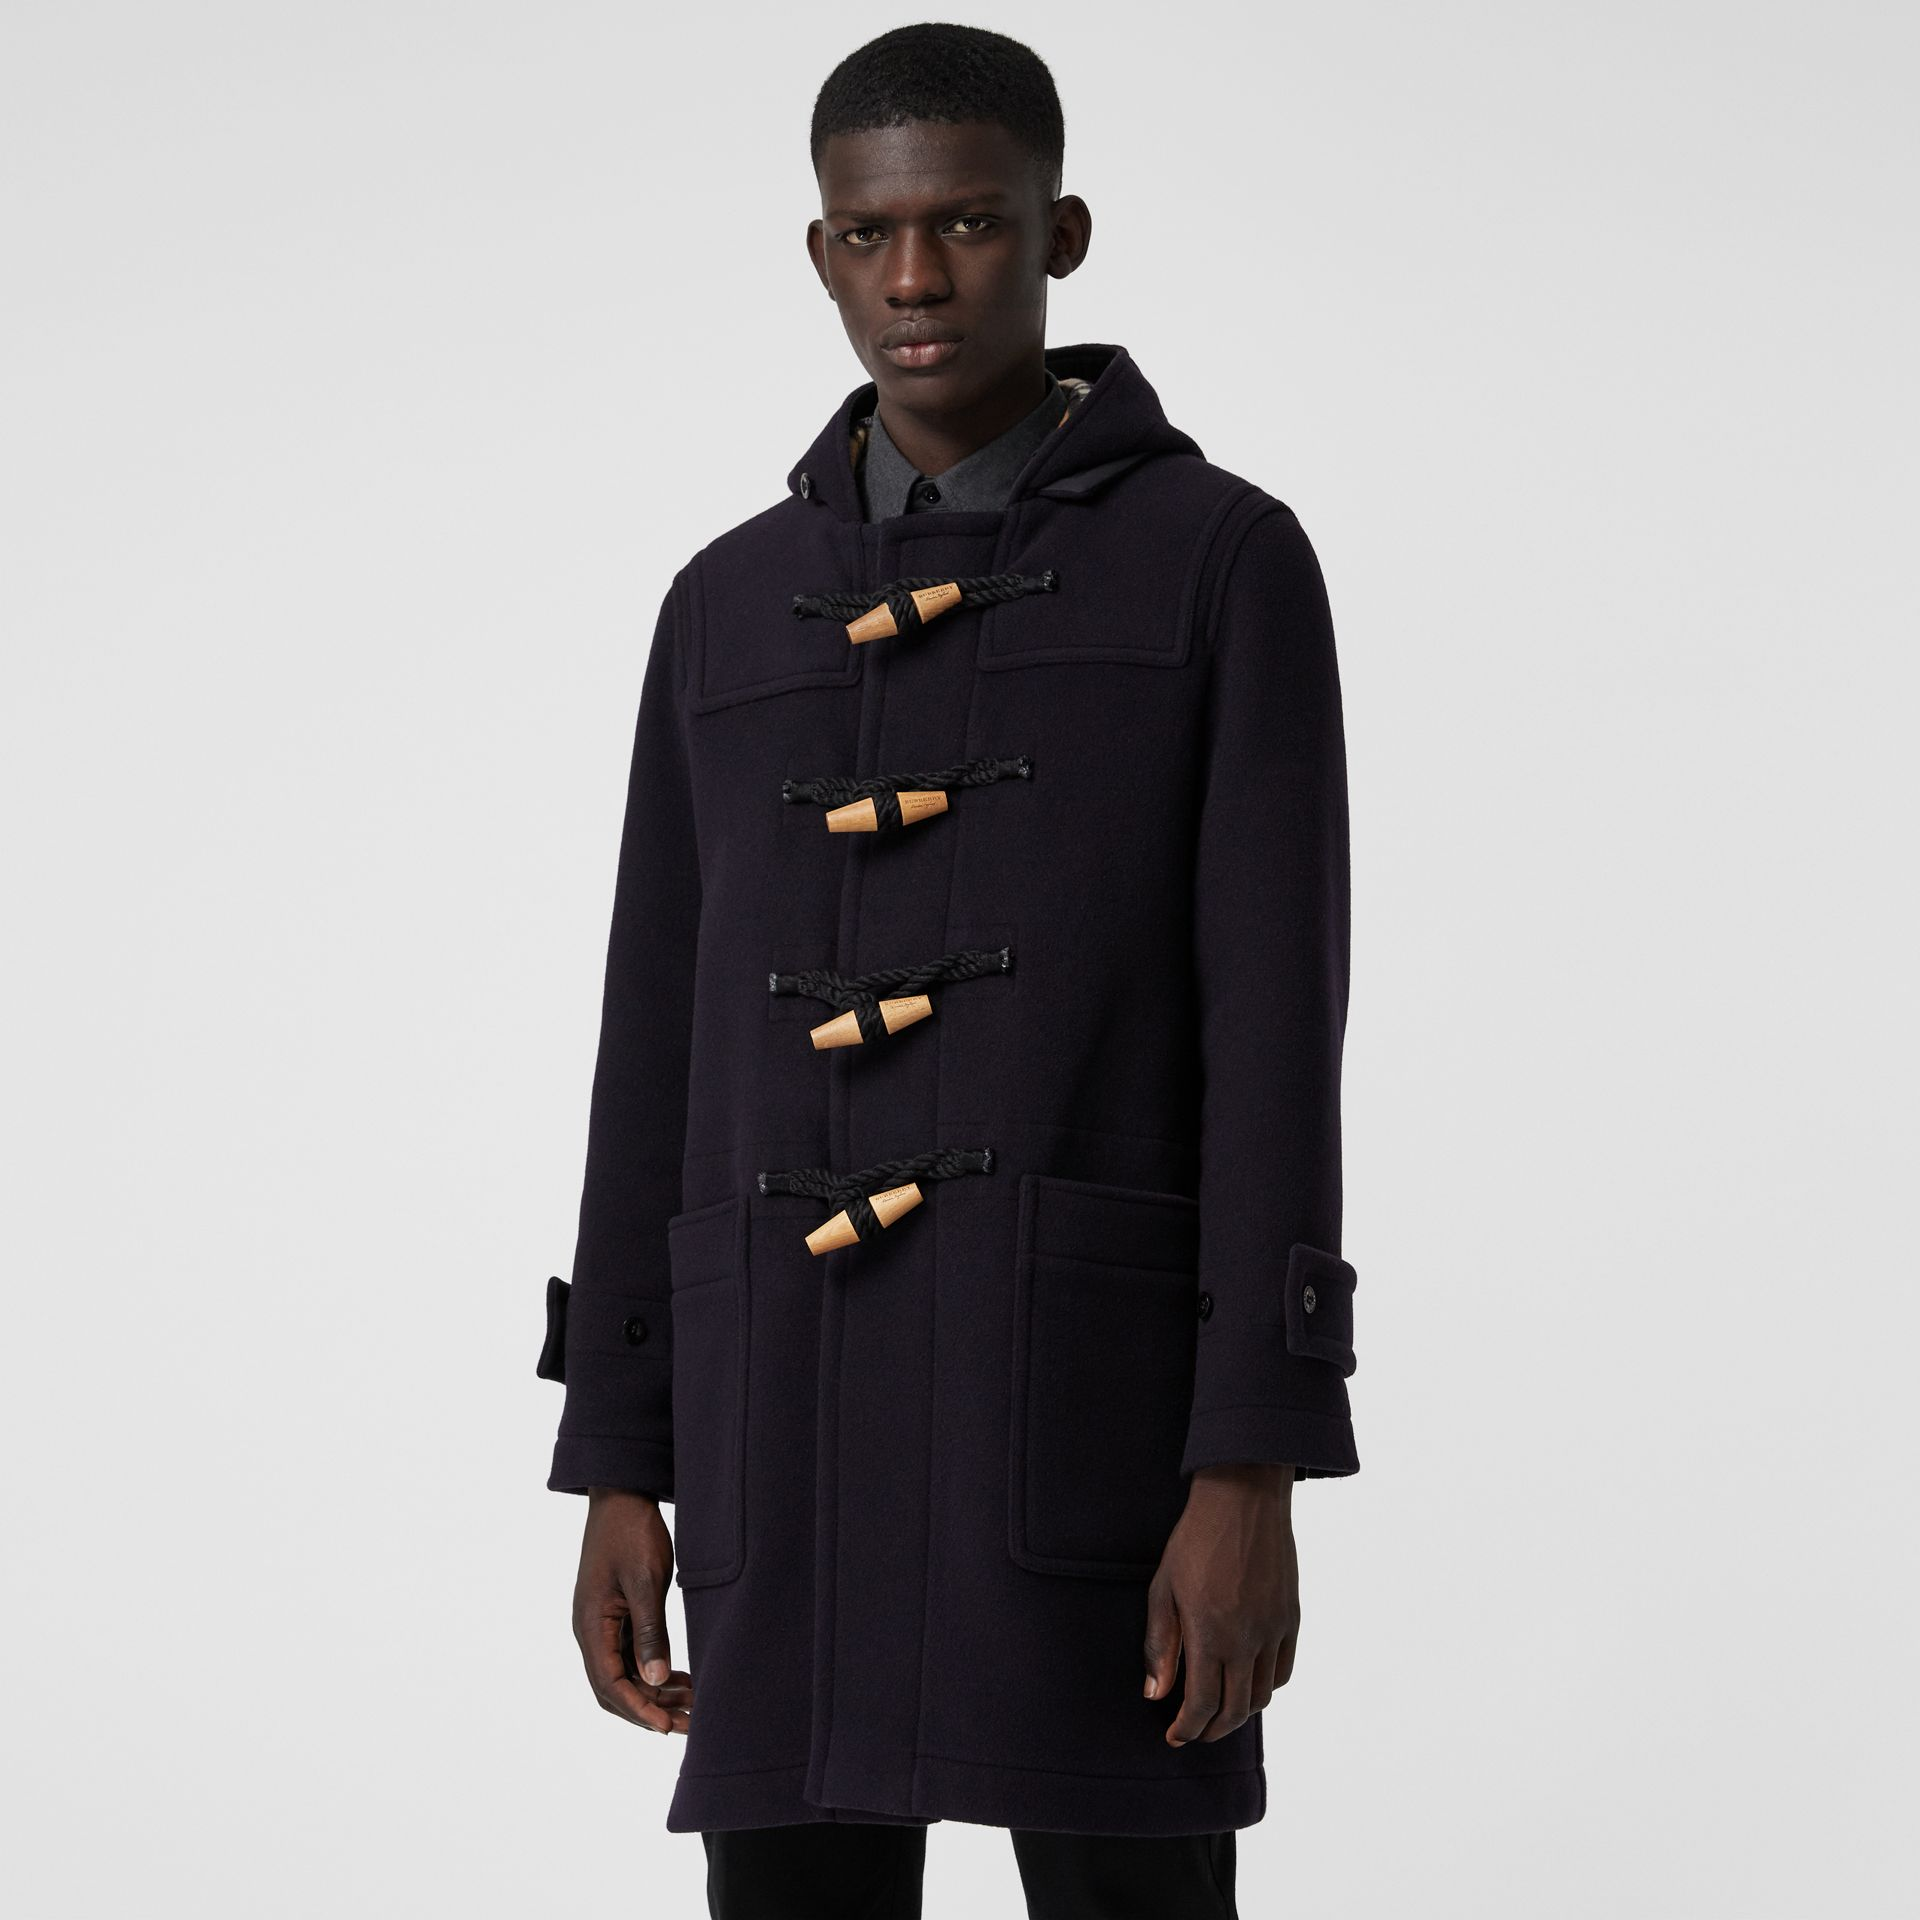 Vintage Check Detail Wool Blend Hooded Duffle Coat in Navy - Men | Burberry Australia - gallery image 5